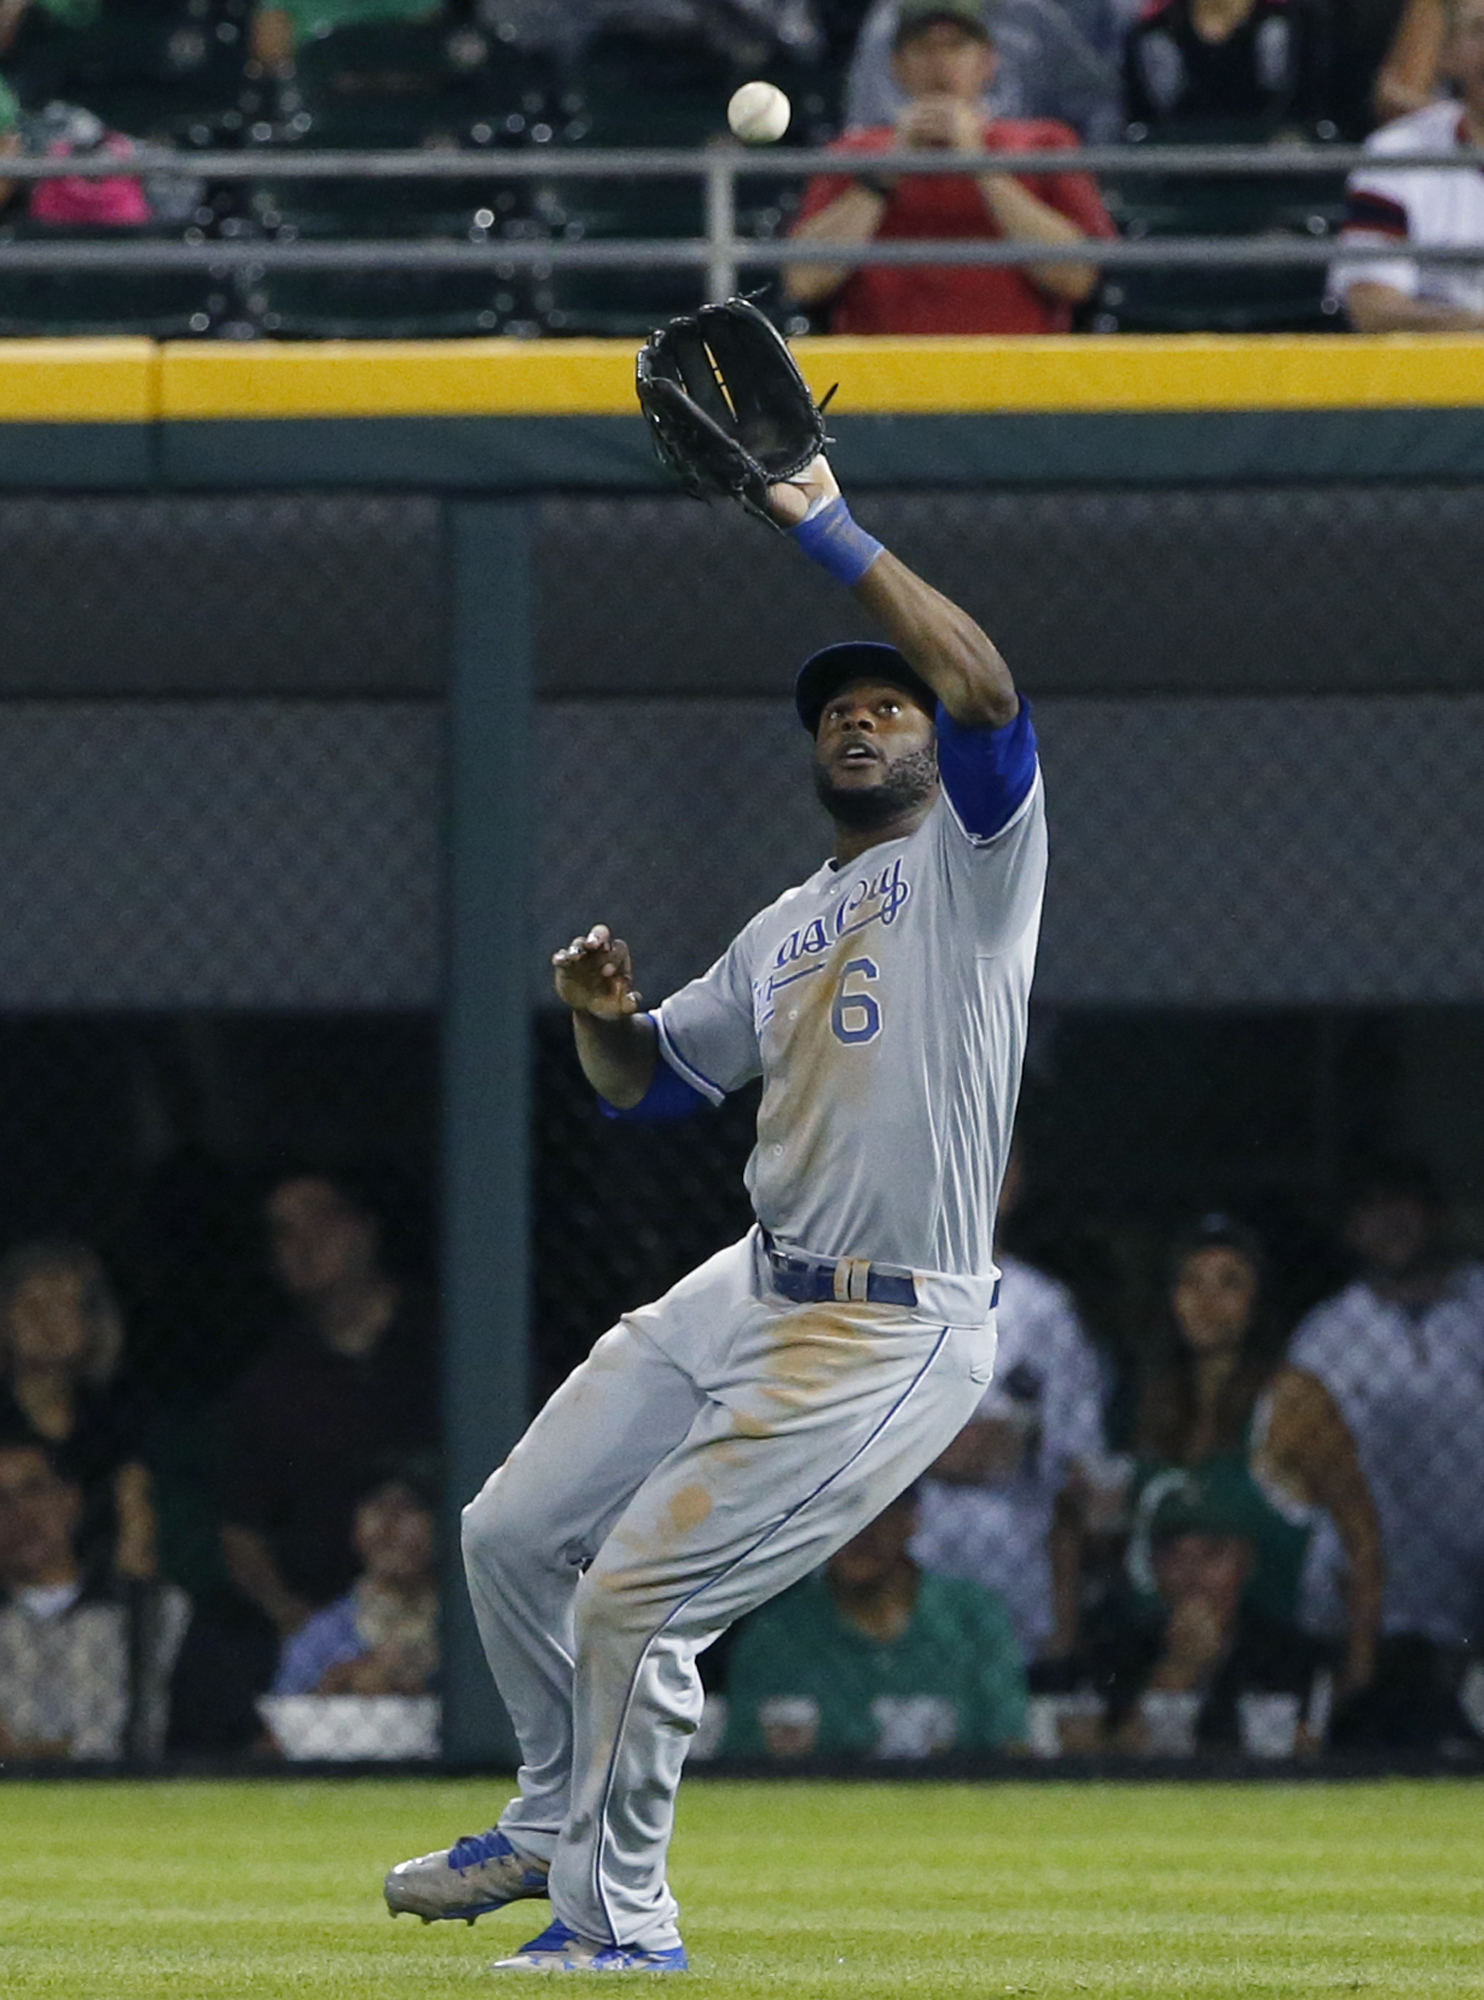 Kansas City Royals right fielder Lorenzo Cain catches a sacrifice fly by Chicago White Sox's Melky Cabrera during the first inning of a baseball game Friday, Sept. 9, 2016, in Chicago. (AP Photo/Nam Y. Huh)